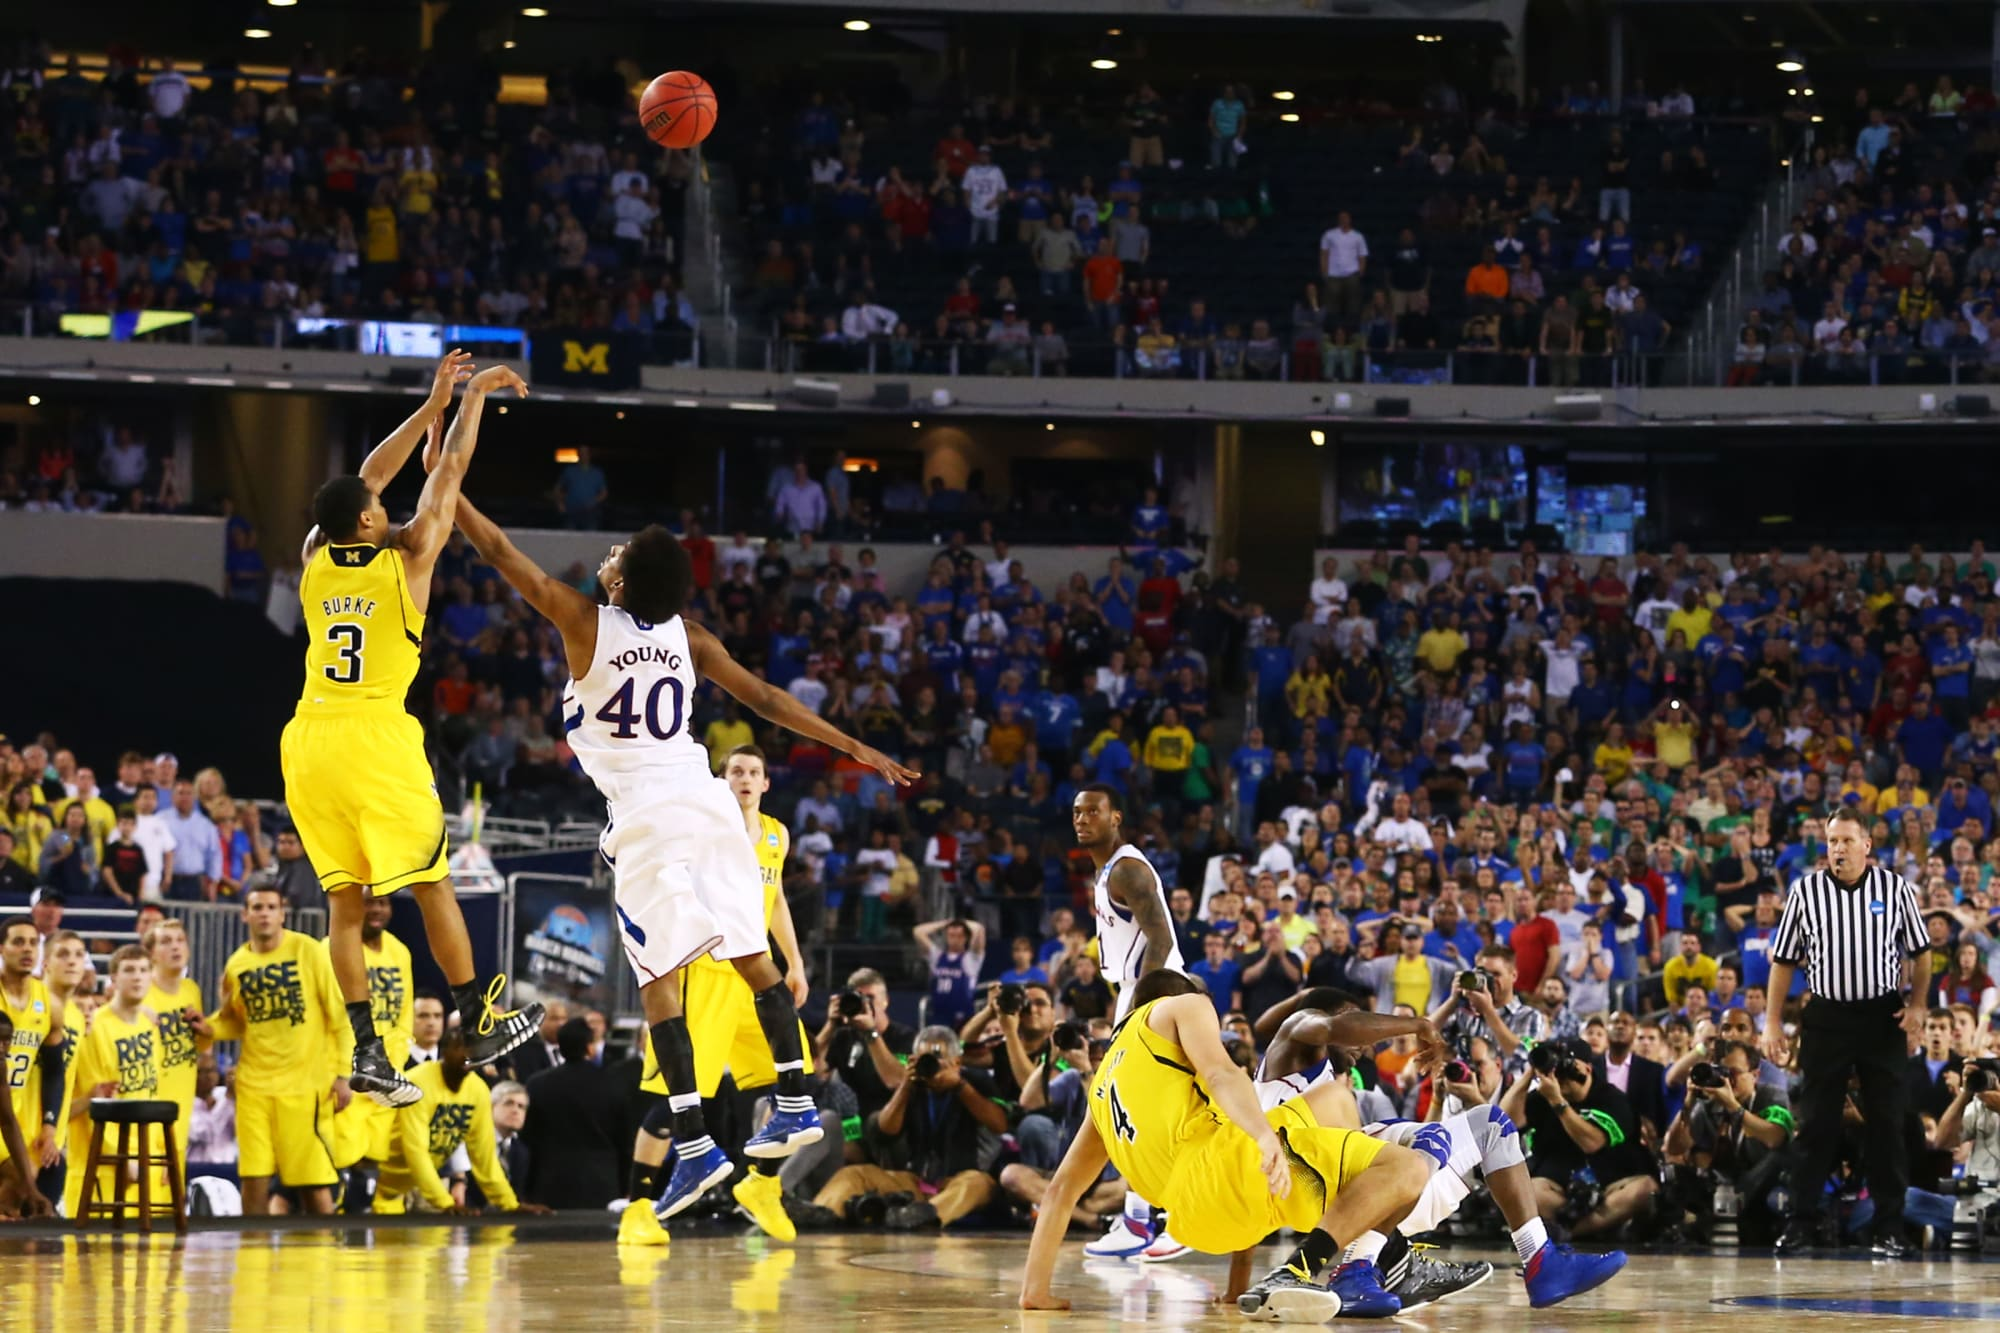 Michigan Basketball: Top 10 All-Time Wolverine point guards